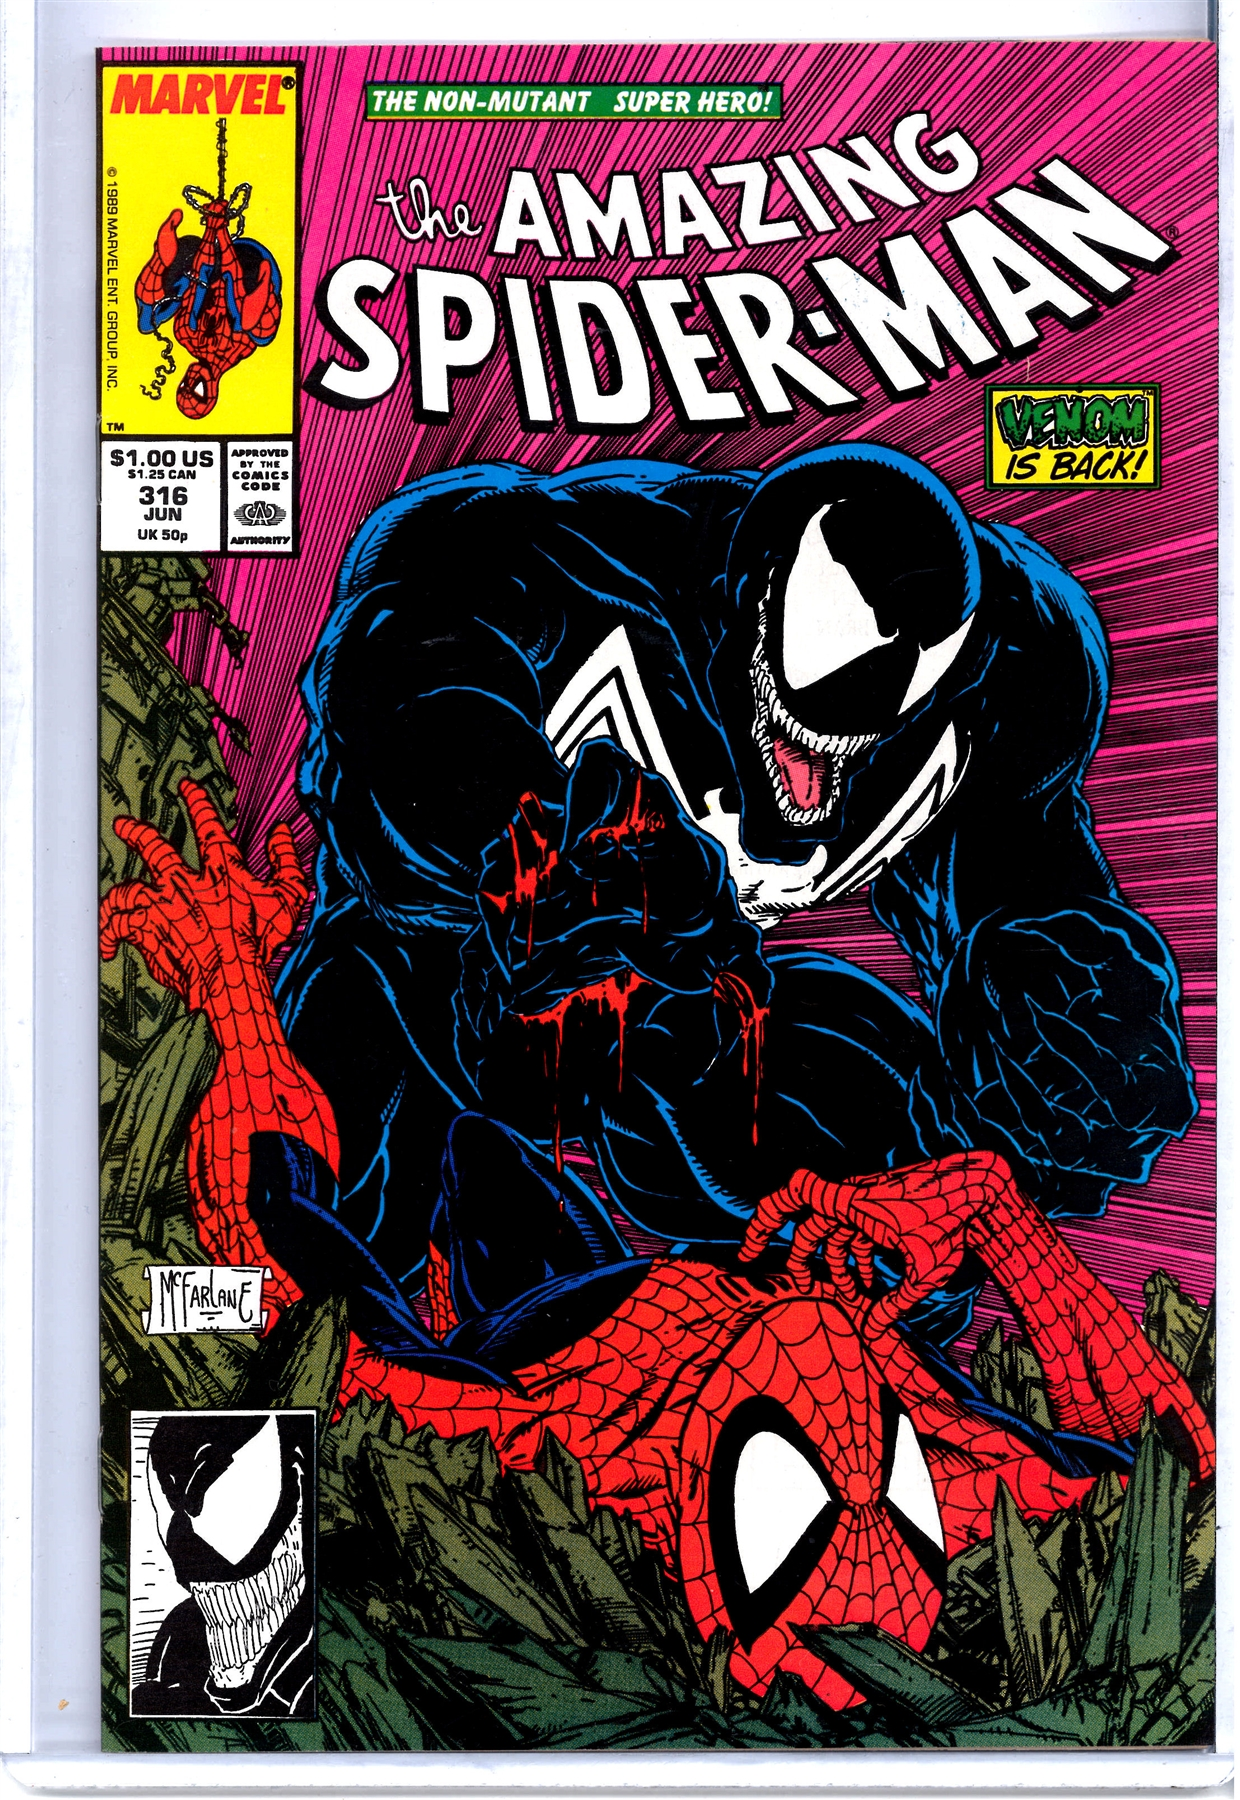 Amazing Spider-Man #316 by Todd McFarlane, first cover ...